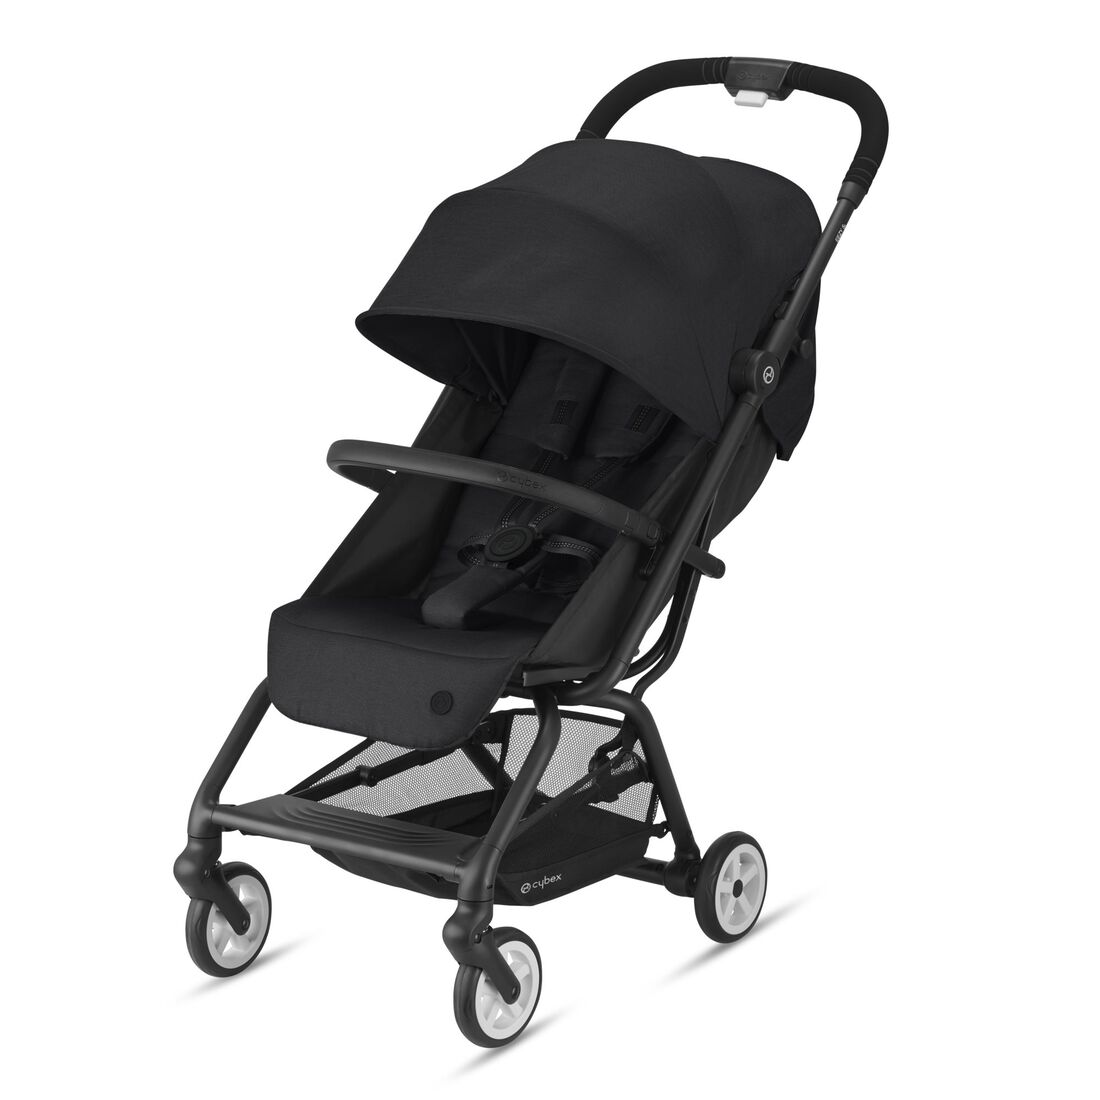 CYBEX Libelle Buggy - Ultra-compact and self-standing when folded